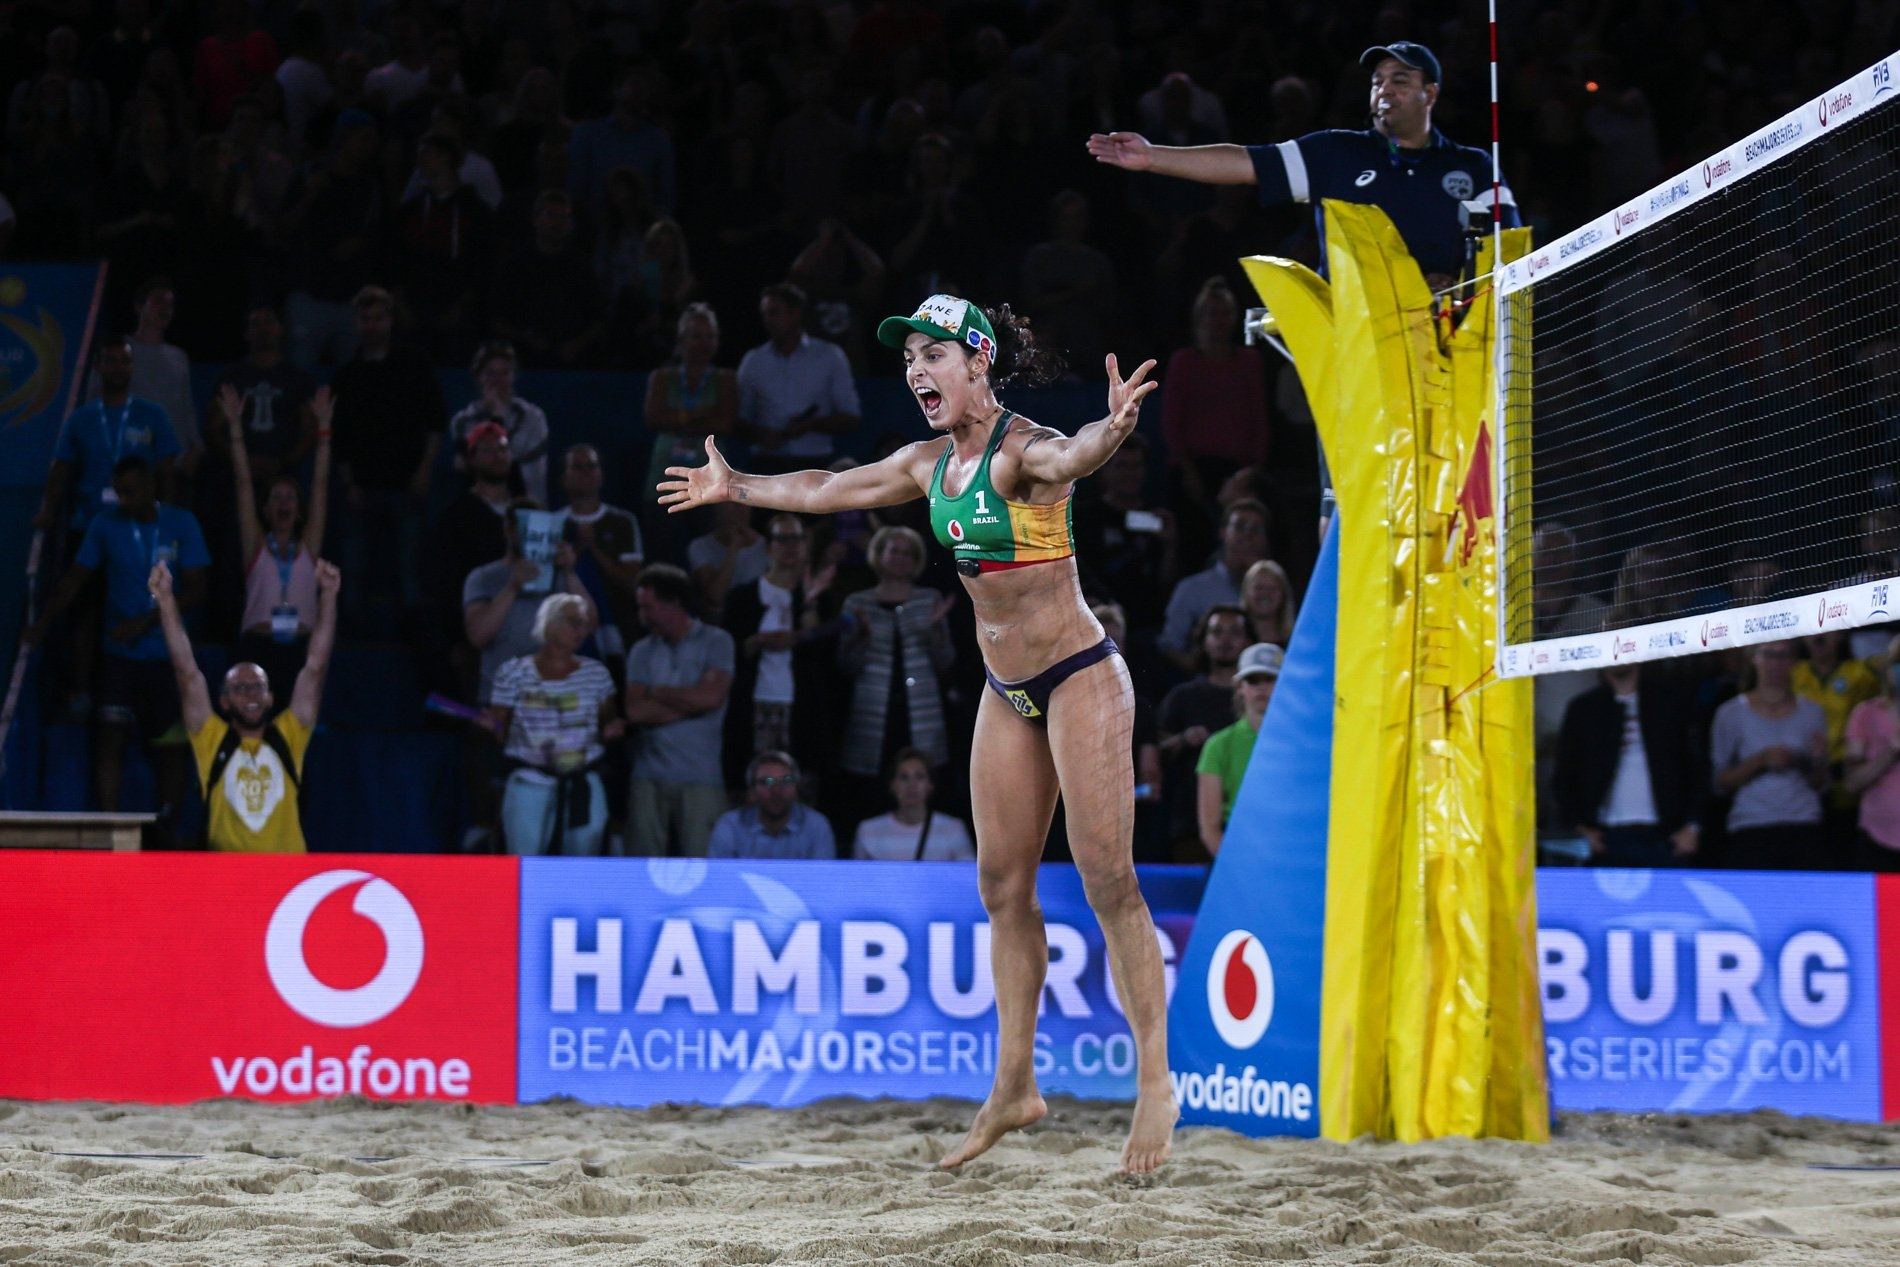 Agatha and Duda started their campaign in Hamburg with a victory